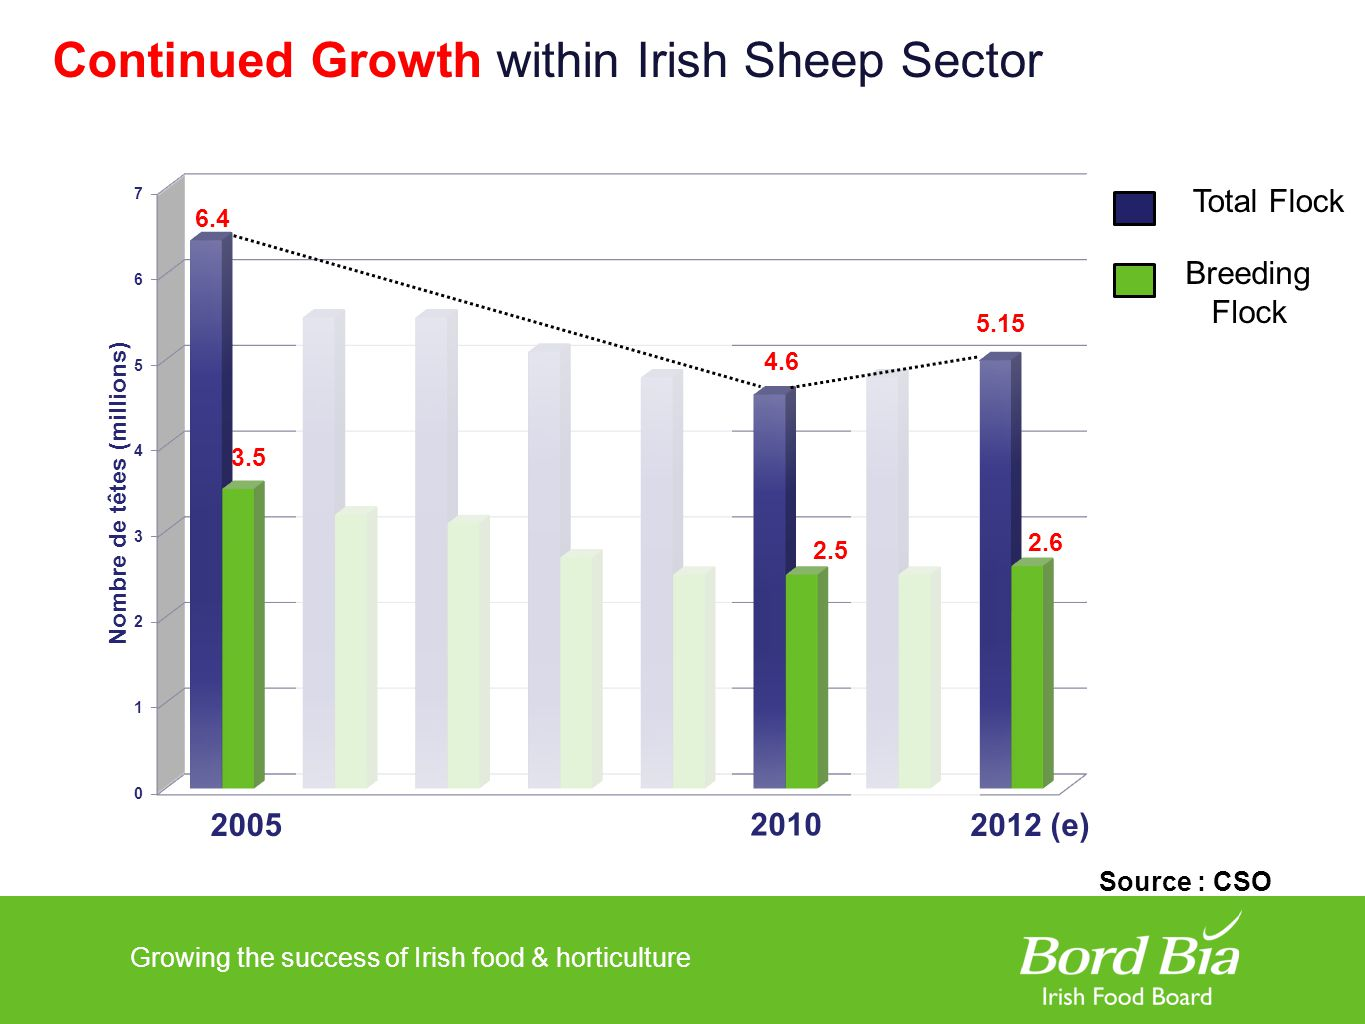 Growing the success of Irish food & horticulture Continued Growth within Irish Sheep Sector 5.6 5.1 4.6 5.15 2.5 2.6 Total Flock Breeding Flock Source